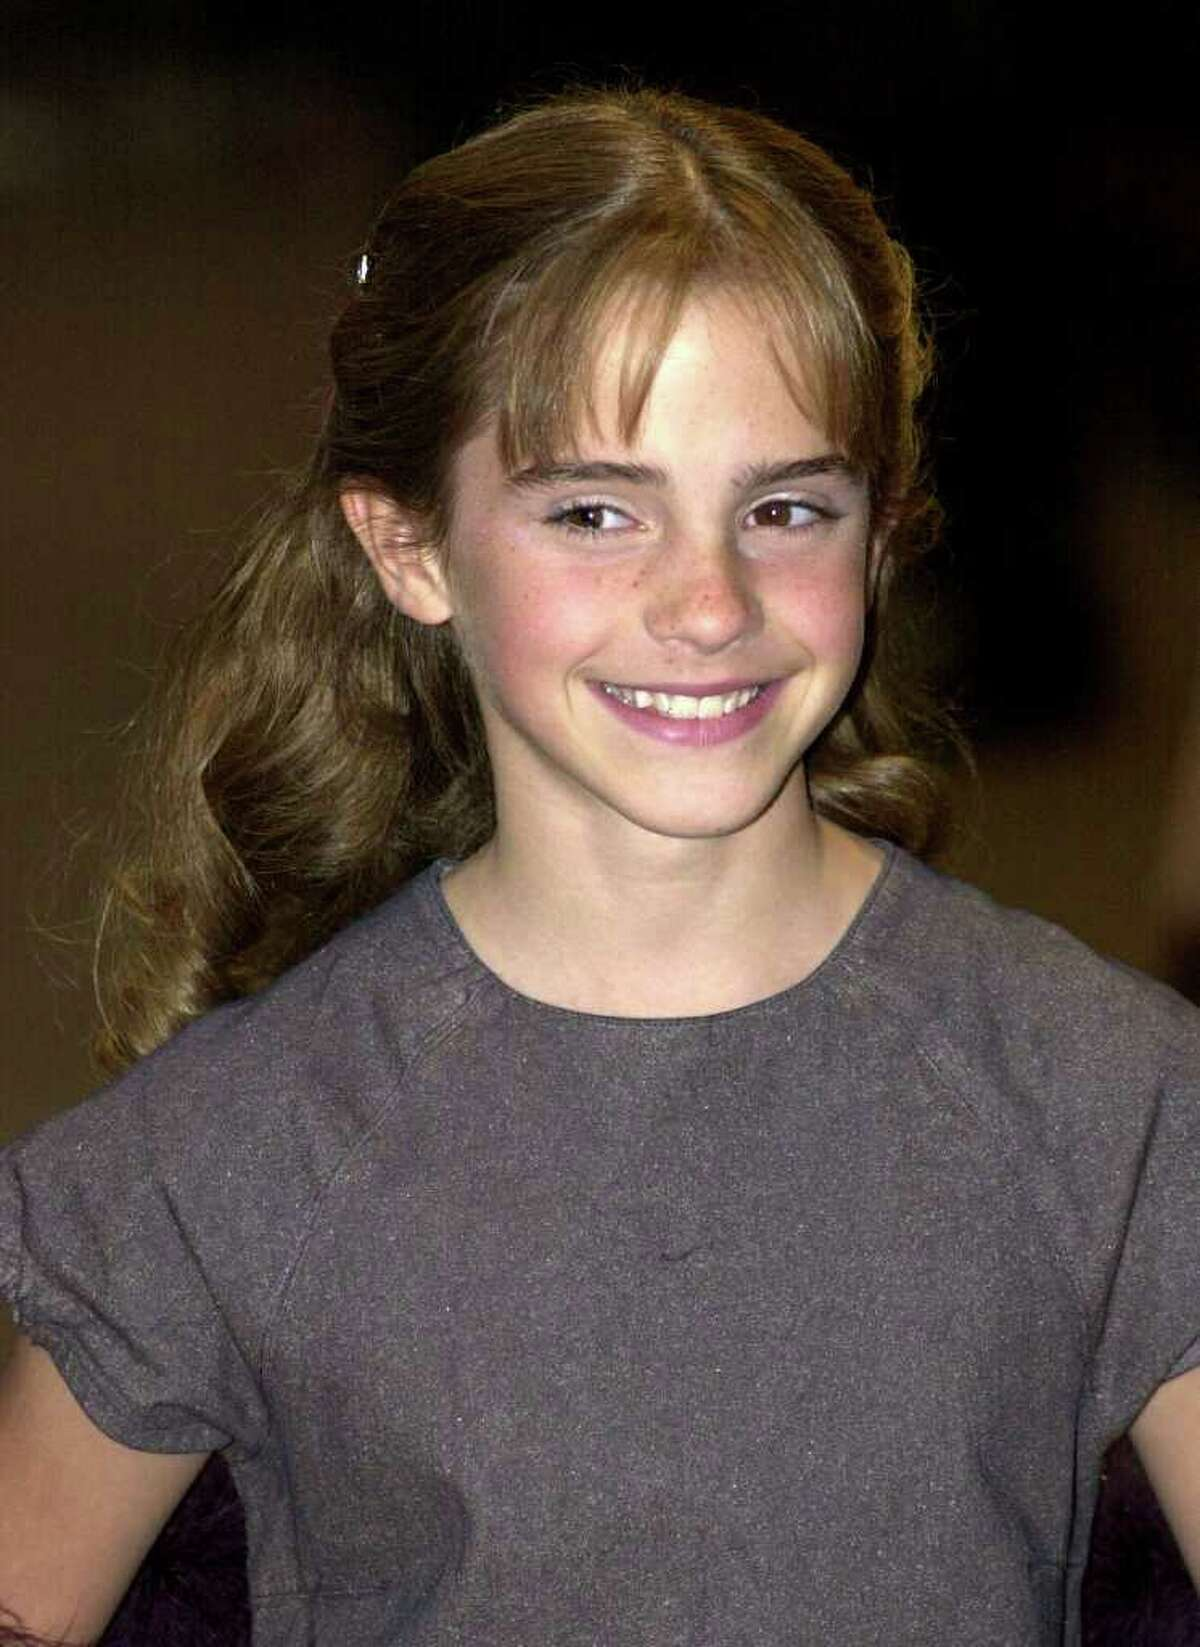 Emma Watson, who plays Hermione Grainger in the Harry Potter movies, arrives for the world premiere of 'Harry Potter and the Sorcerer 's Stone at the Odeon Leicester Square in London on November 4, 2001.